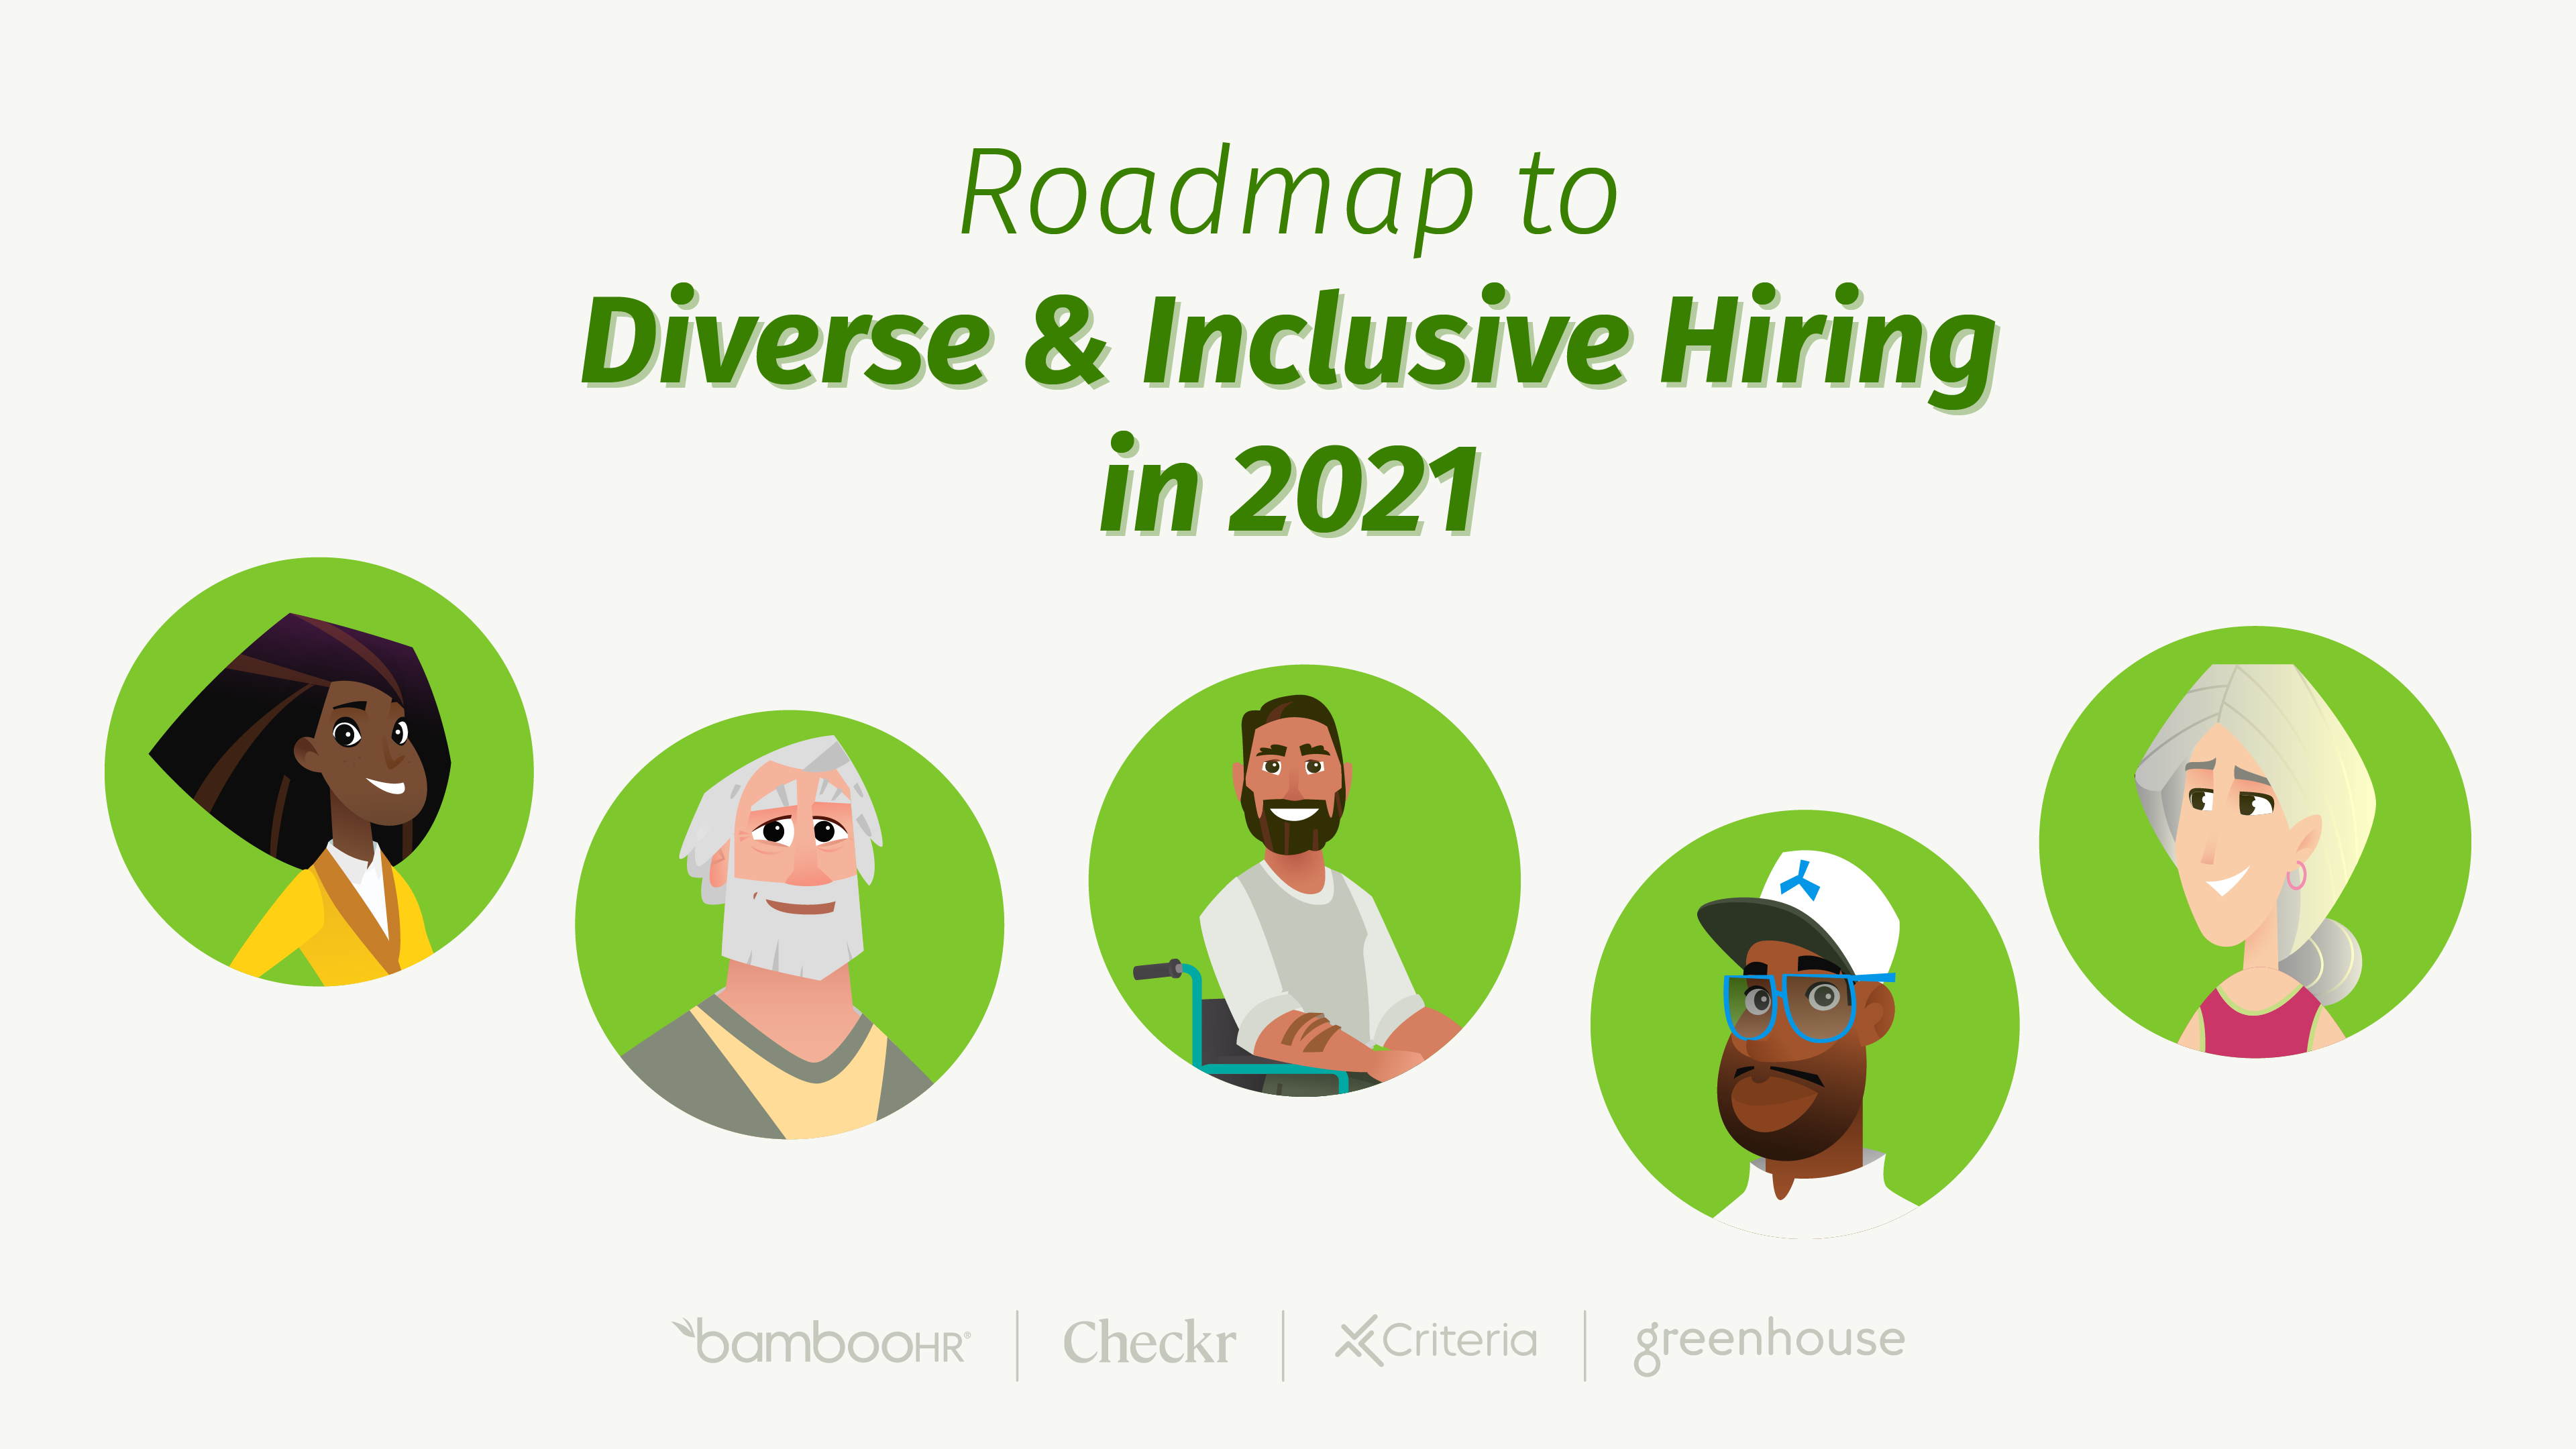 Roadmap to Diverse and Inclusive Hiring in 2021